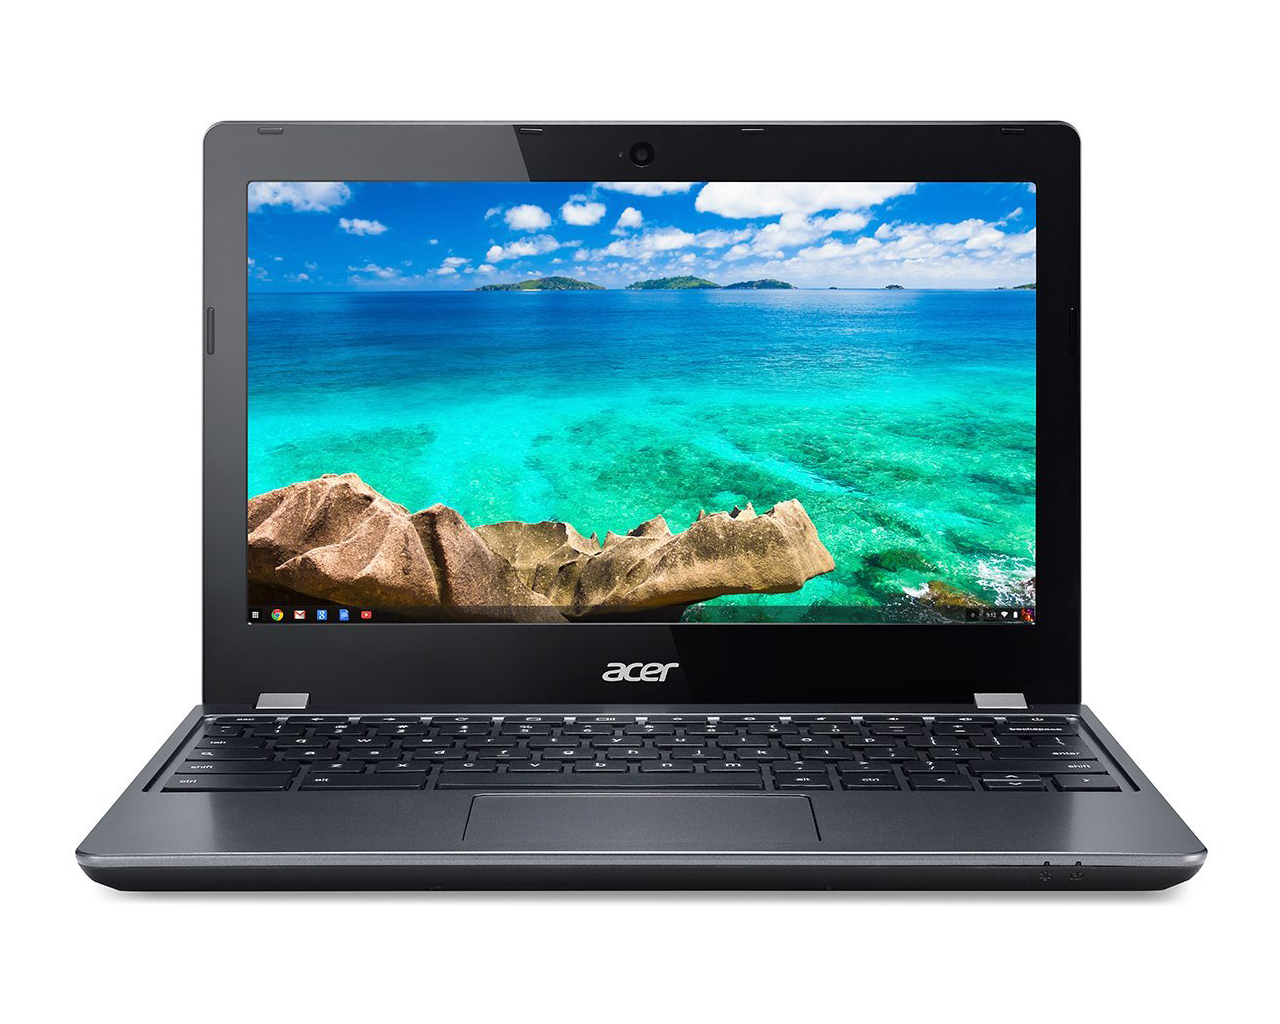 Acer Chromebook C740 C3dy Notebookcheck Net External Reviews